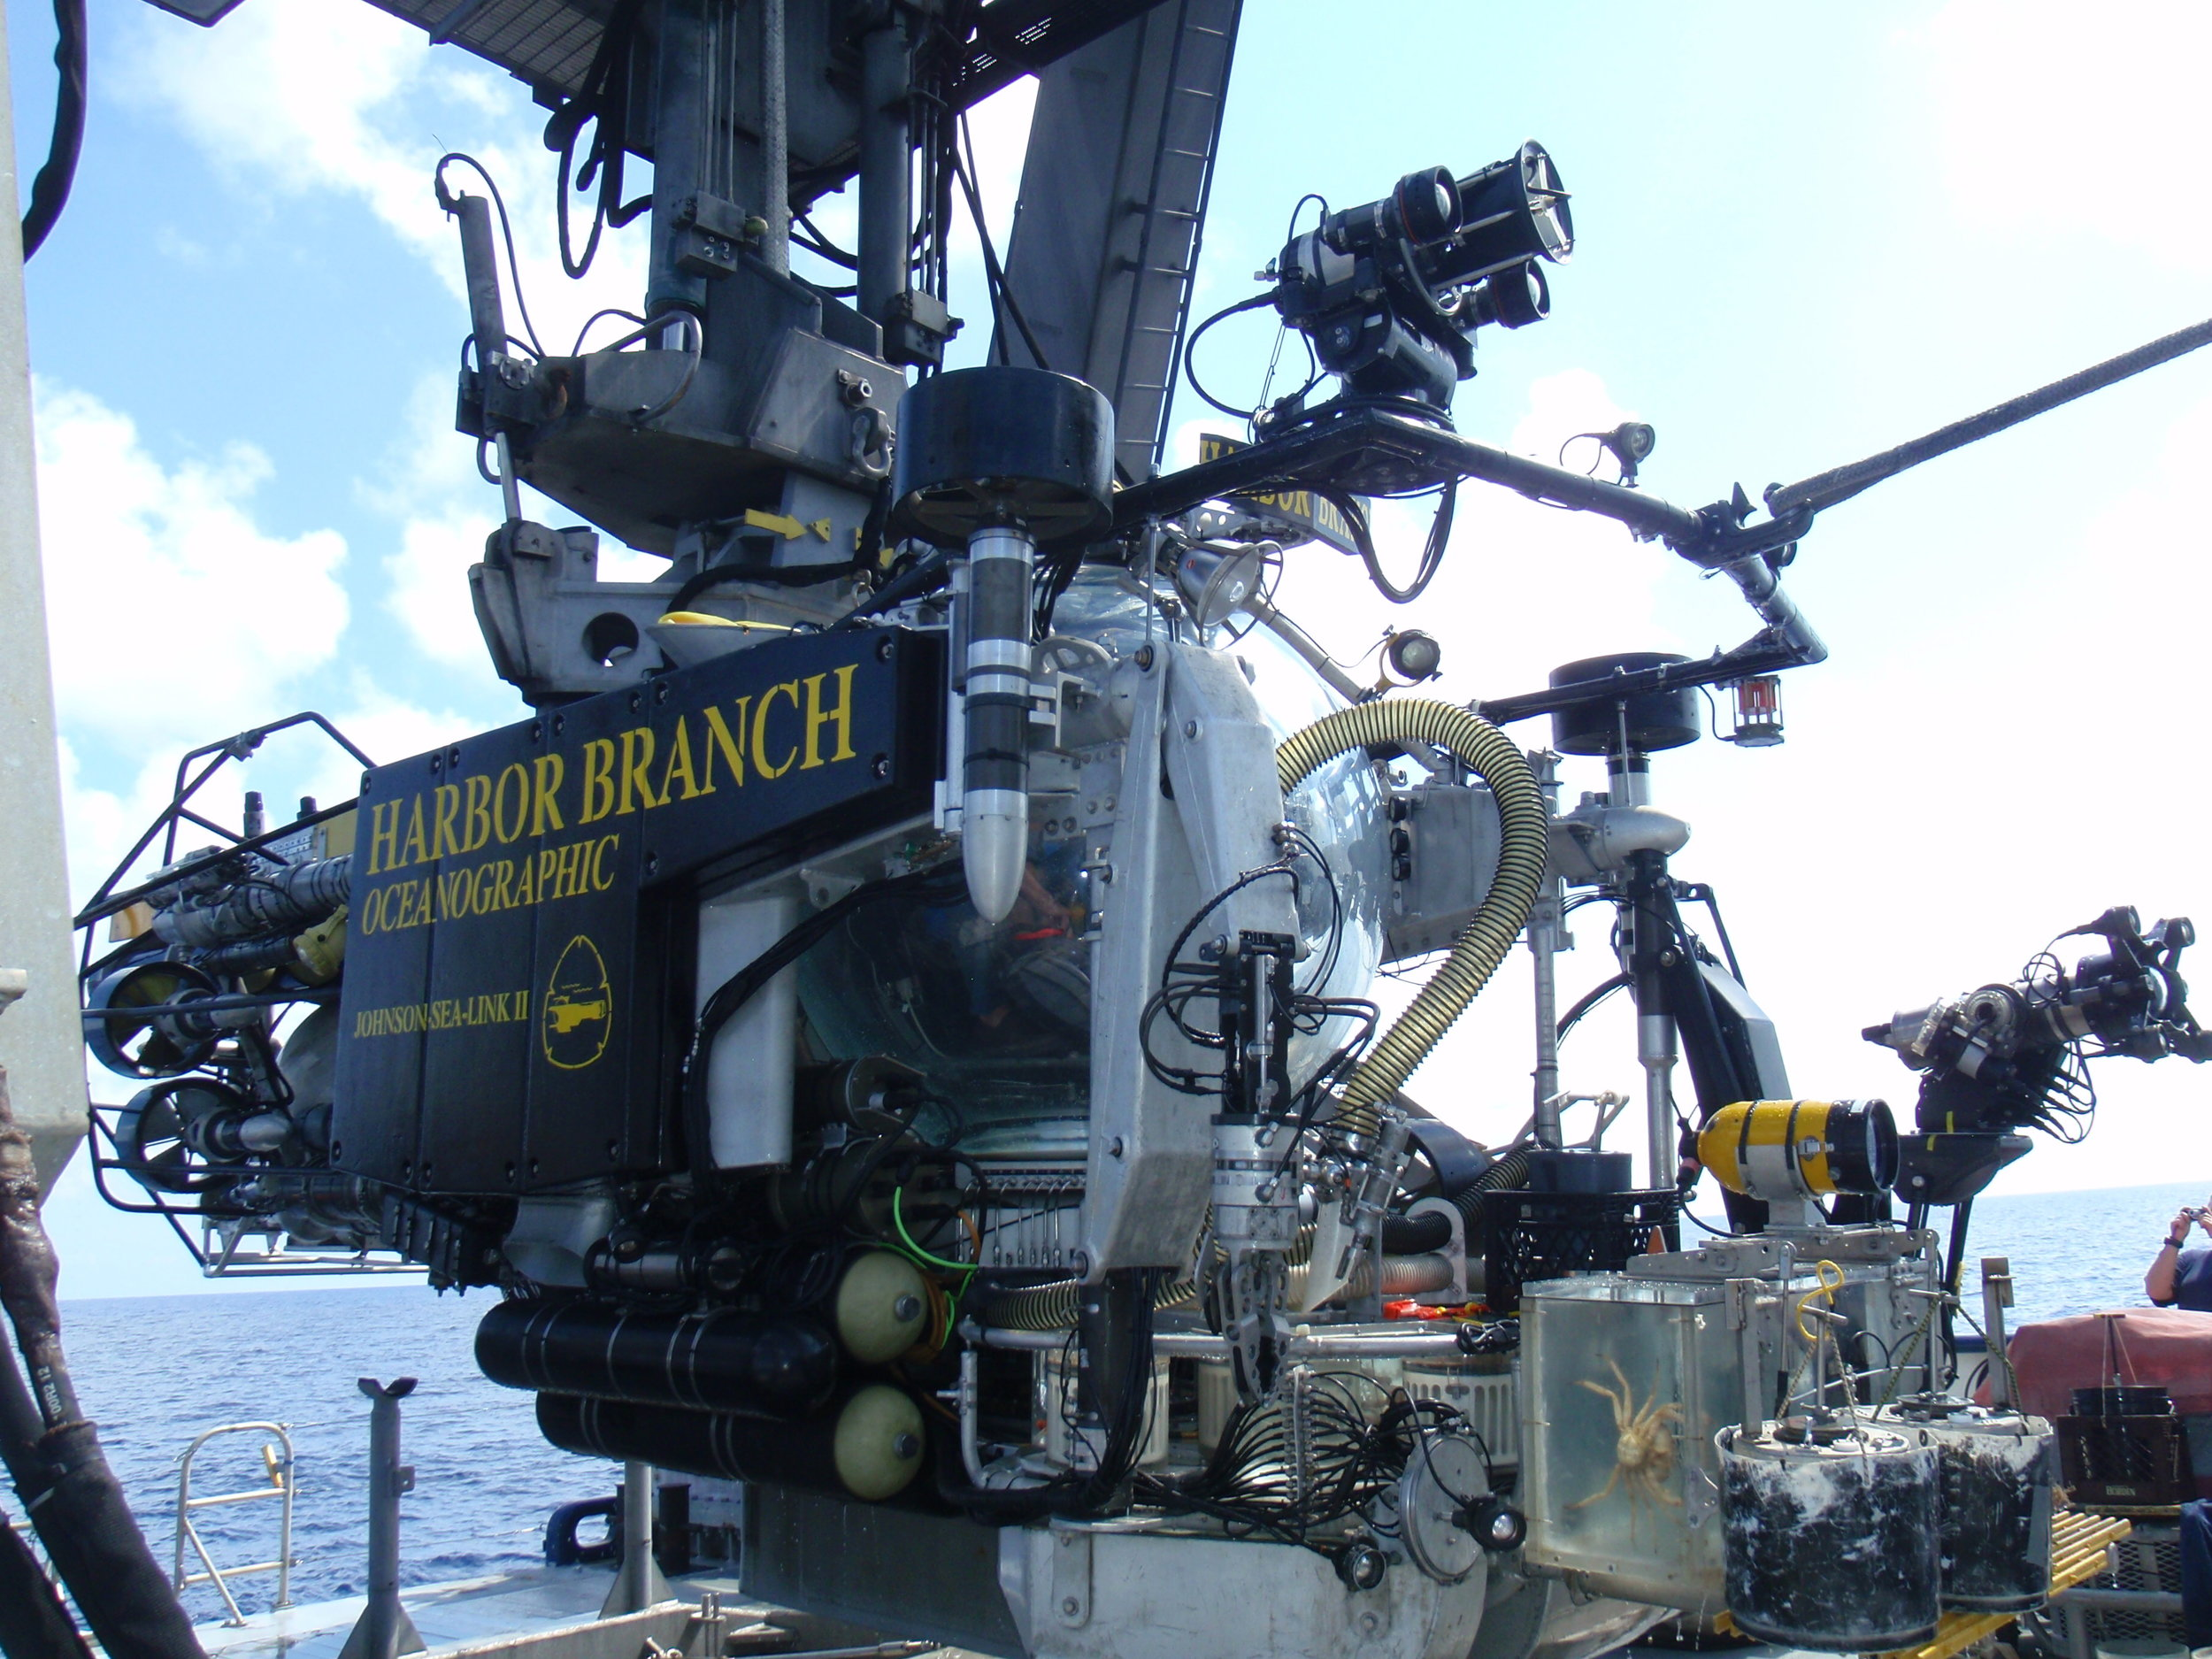 HBOI@FAU Johnson Sealink II submersible. Supported operations as engineer, technician, navigator, swimmer, and co-pilot.